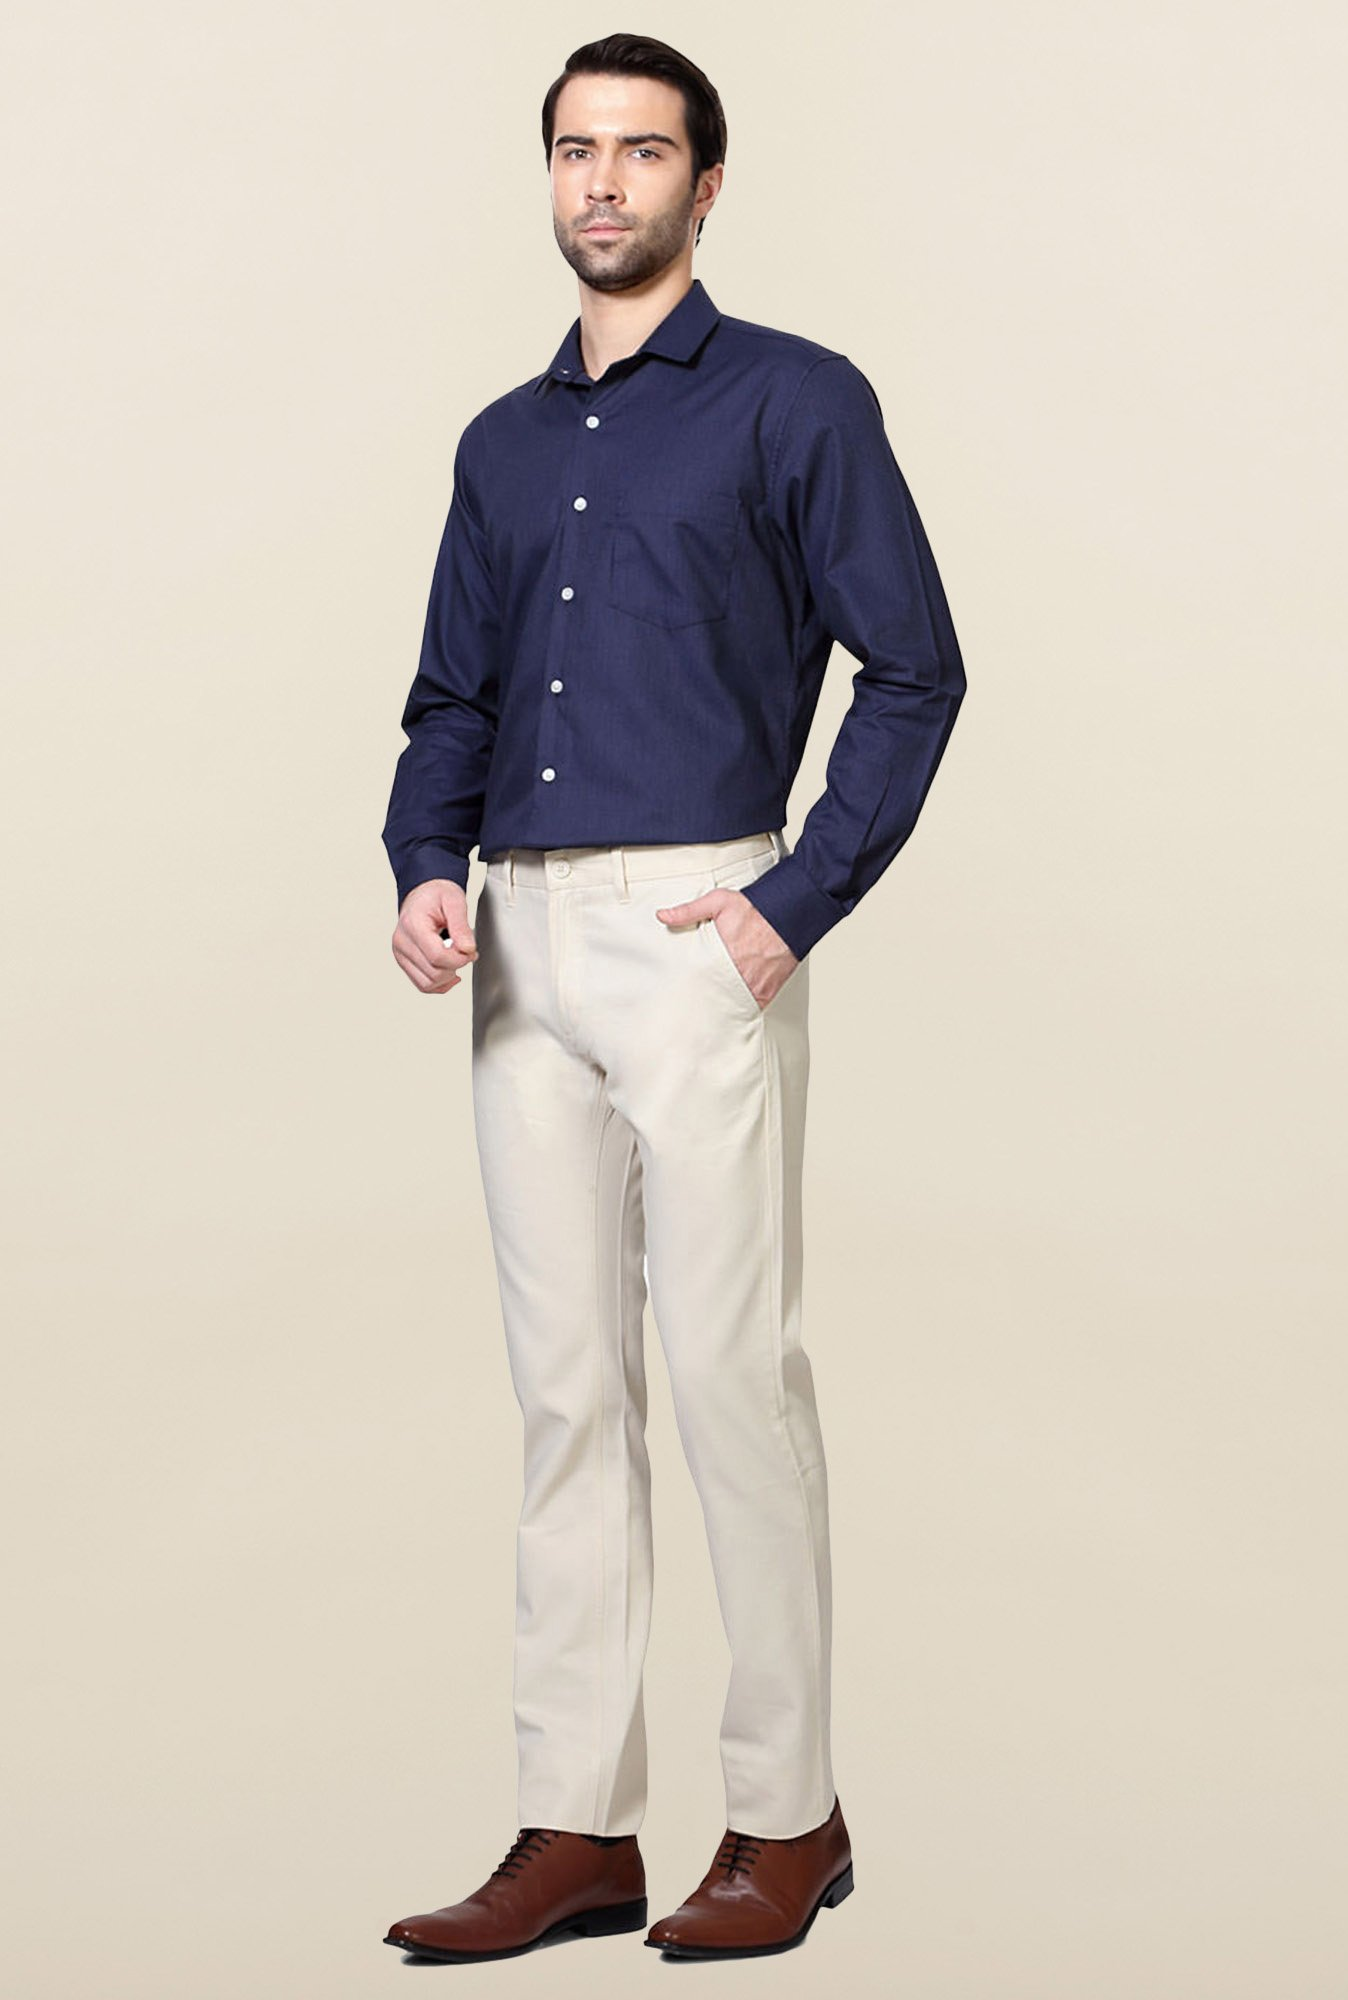 Allen Solly Cream Solid Cotton Trouser